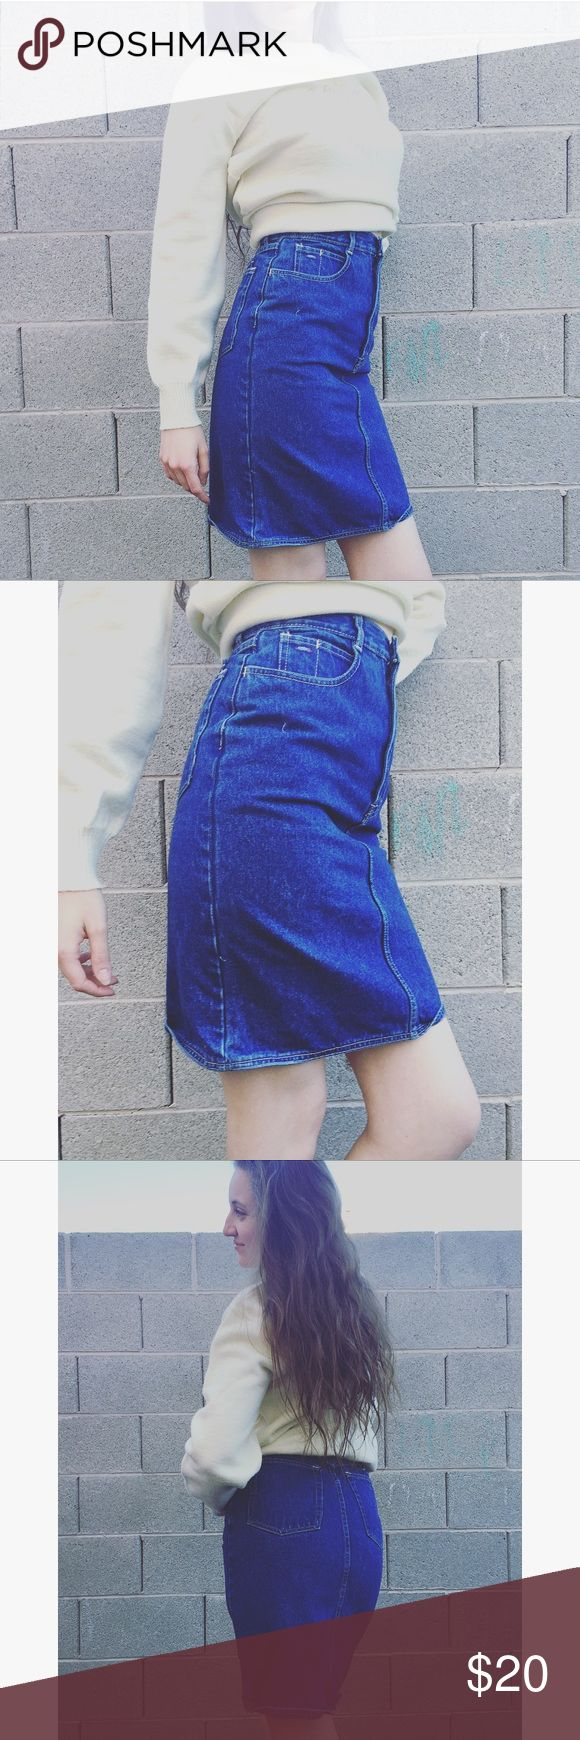 🆕 Vintage Coca Cola denim skirt Coca Cola leather on the back and a Coca Cola button. High-wasted skirt. Pockets in the back. Real Brand is Coca Cola. Vintage Skirts